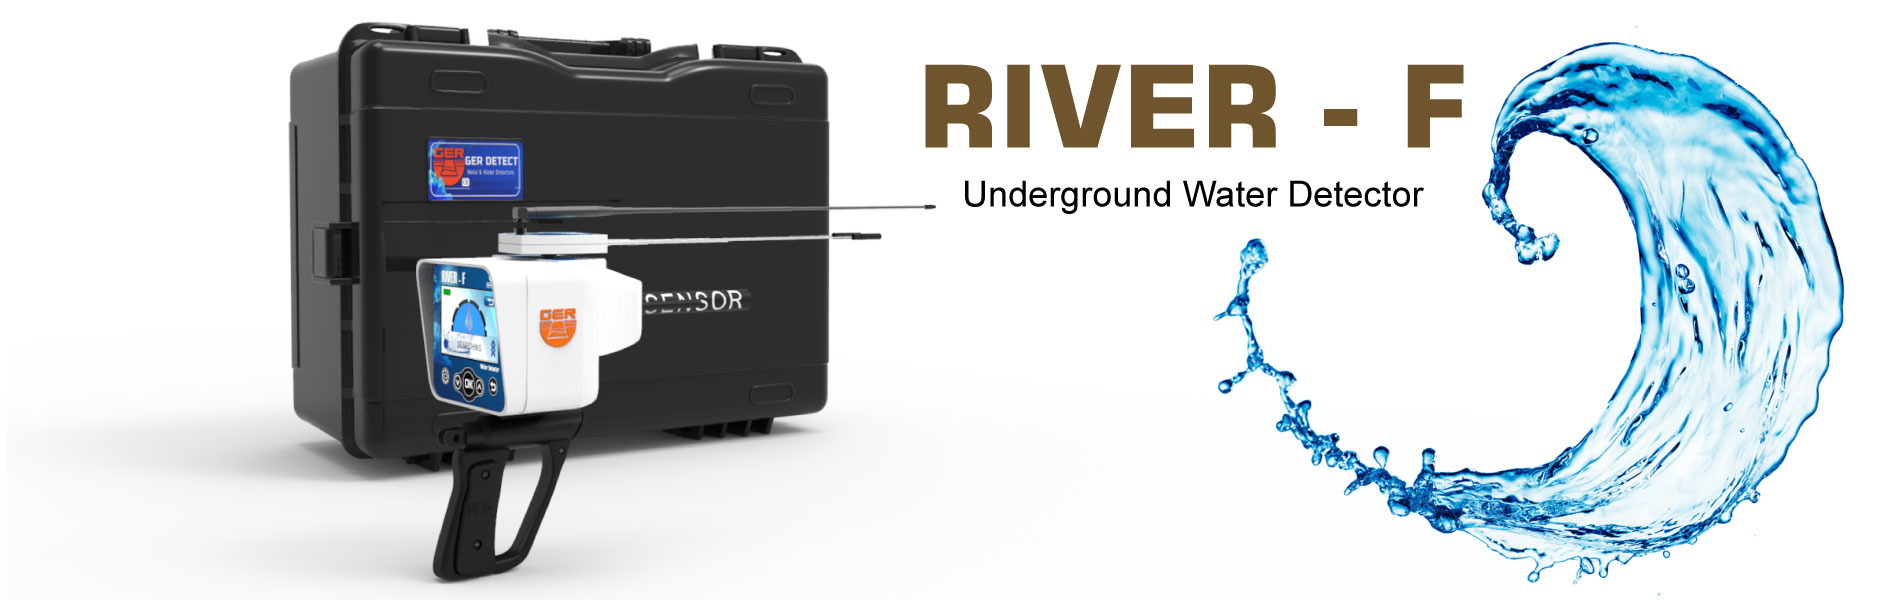 river-f-best-device-detect-groundwater